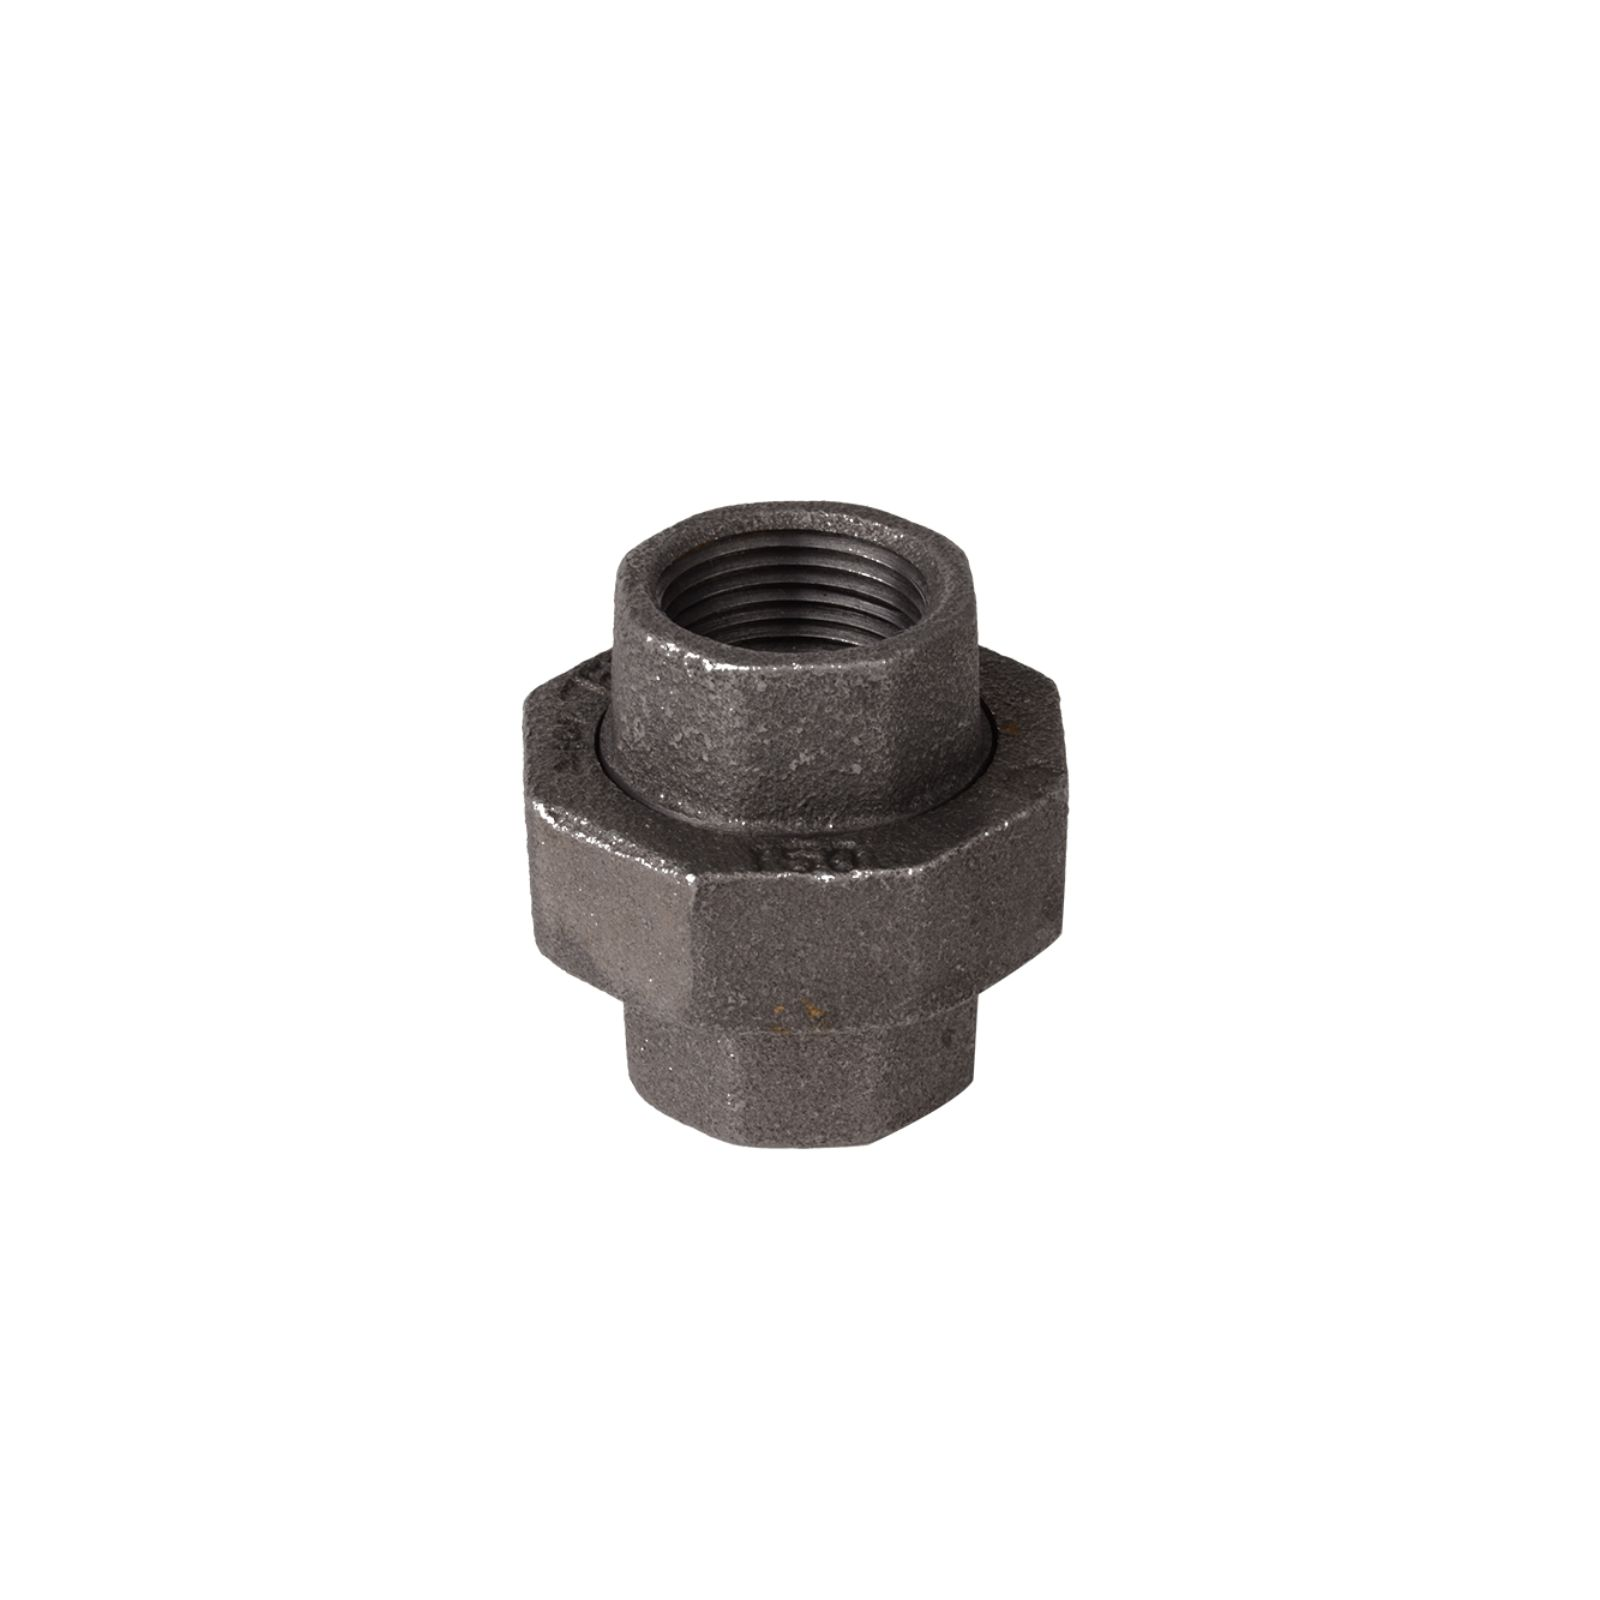 "DiversiTech BPF-32 - Black Malleable Iron Fitting,  3/4"" Union"